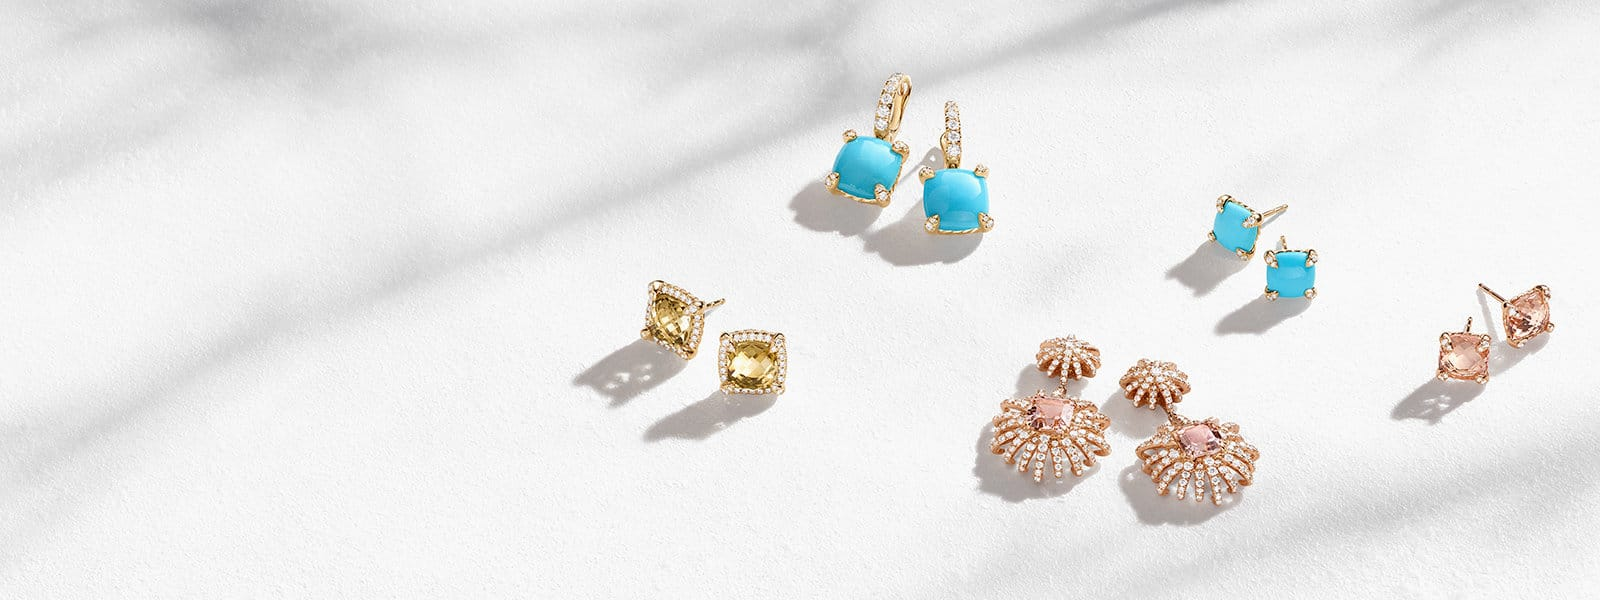 David Yurman Châtelaine® and Starburst earrings in 18K yellow or rose gold with citrine, turquoise or morganite and diamonds scattered on a white textured stone with long shadows.